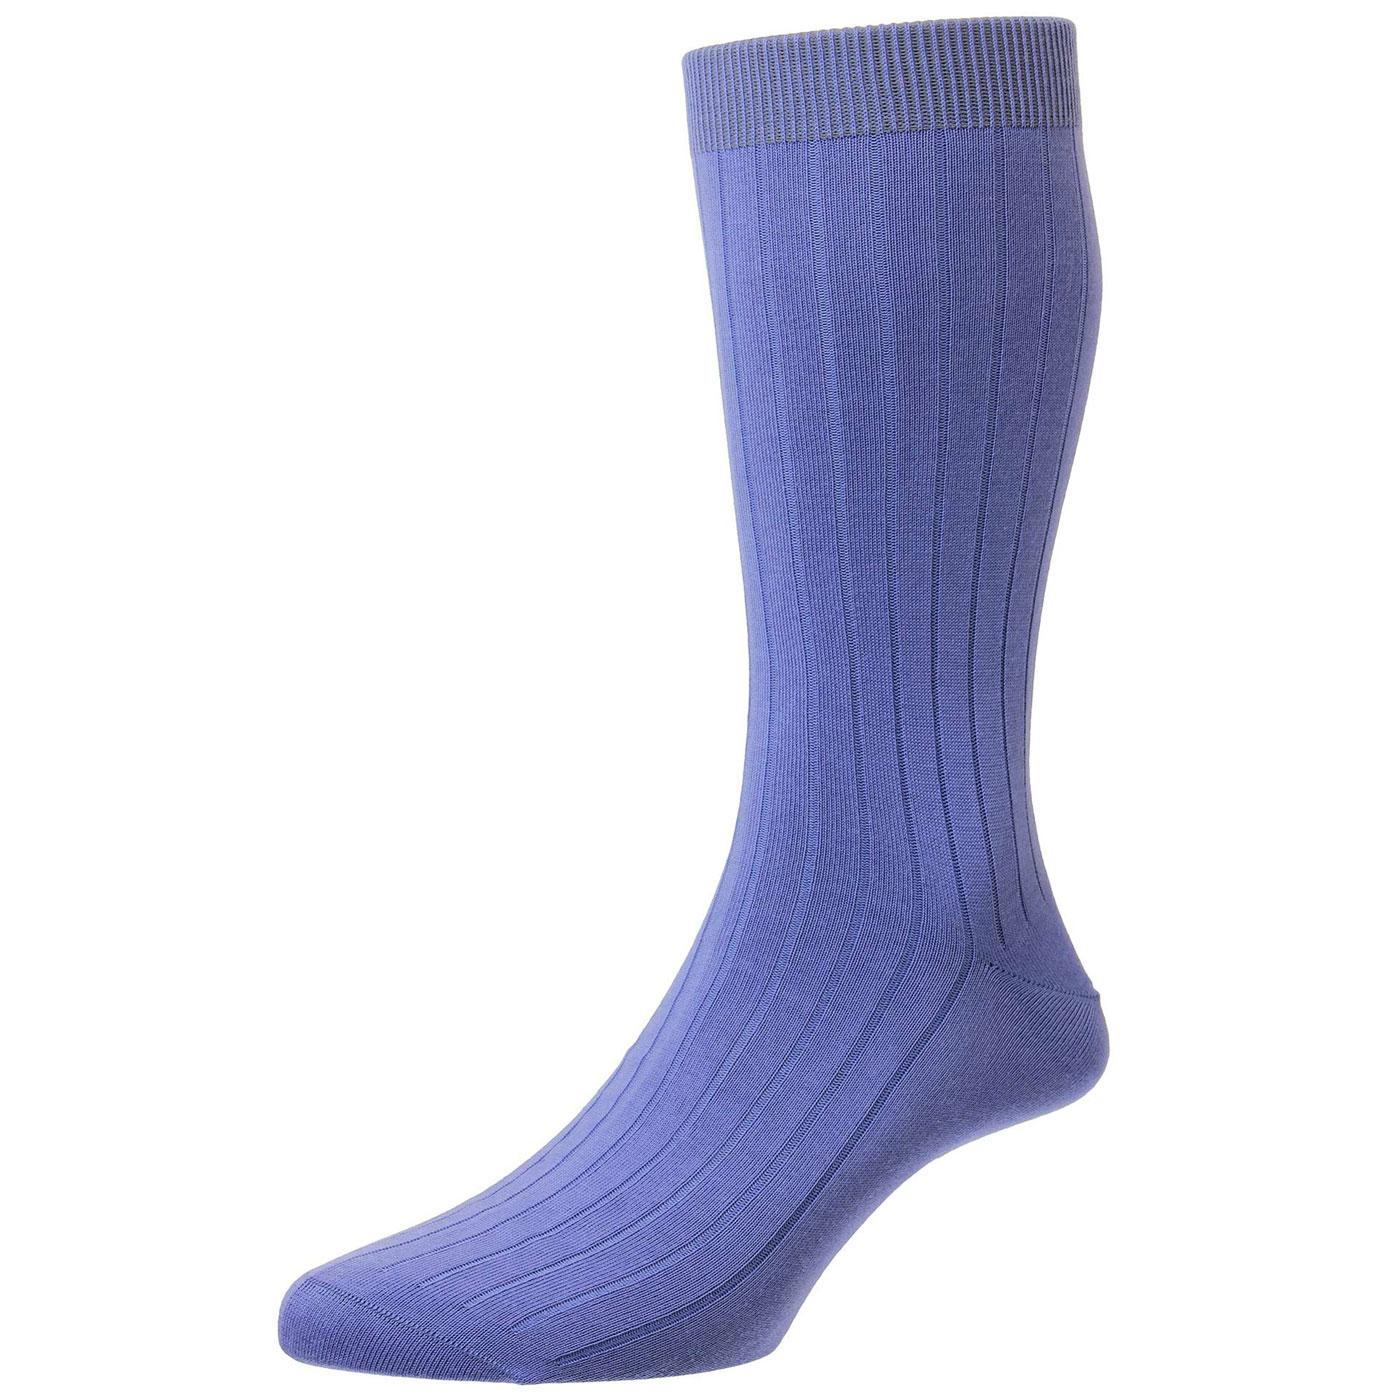 + PANTHERELLA Retro Mod Plain Knit Ribbed Socks C